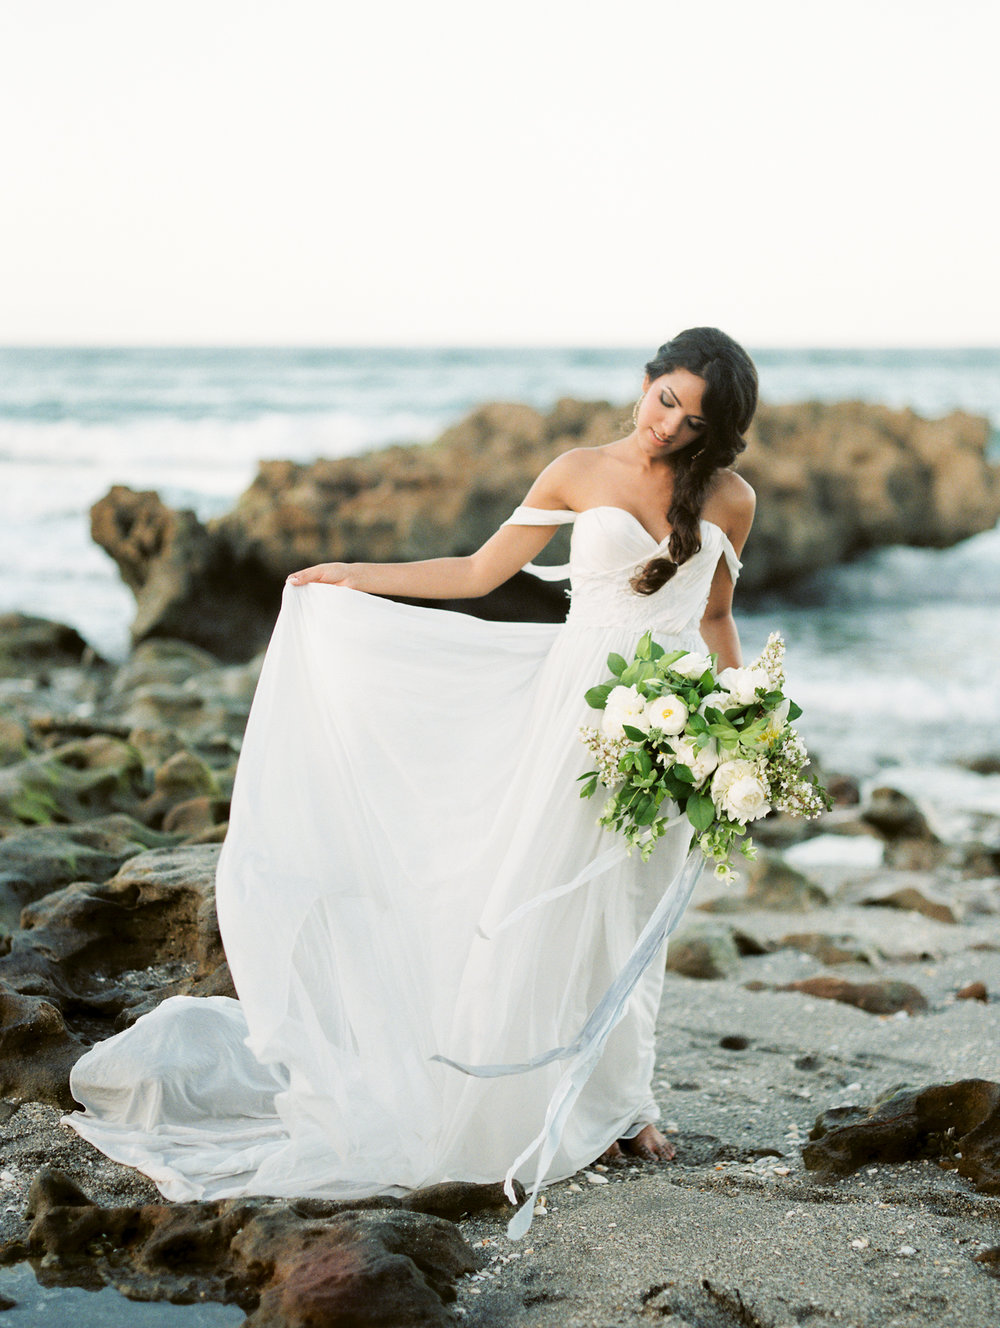 coral cove, jupiter beach FL, palm beach wedding photos, wedding gown dress on bride